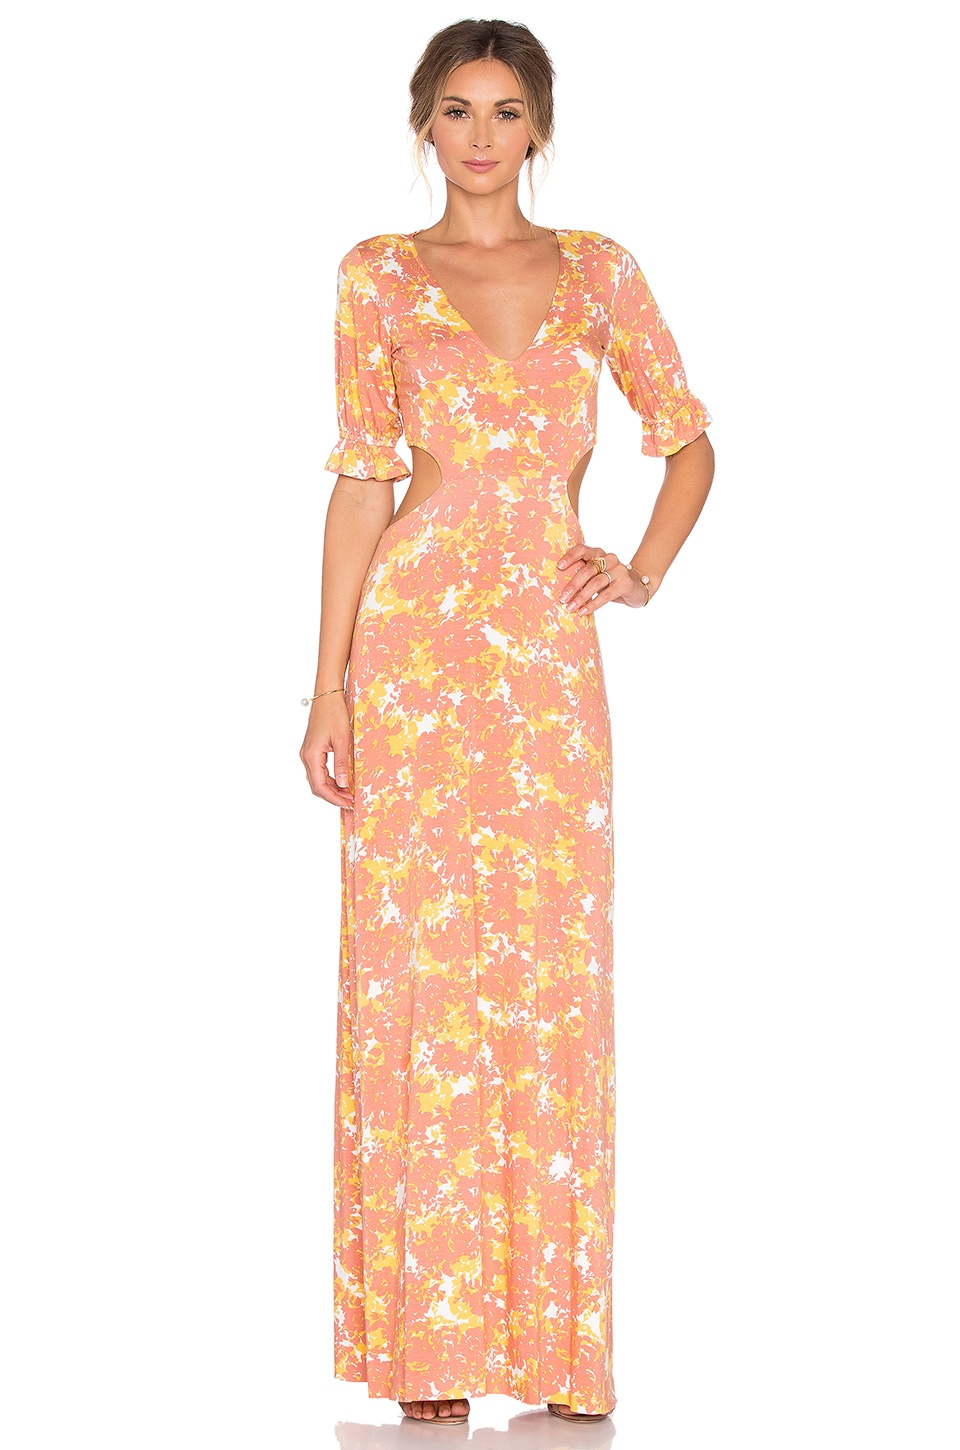 Rachel pally finnie maxi dress in fiore revolve rachel pally finnie maxi dress in fiore ombrellifo Image collections